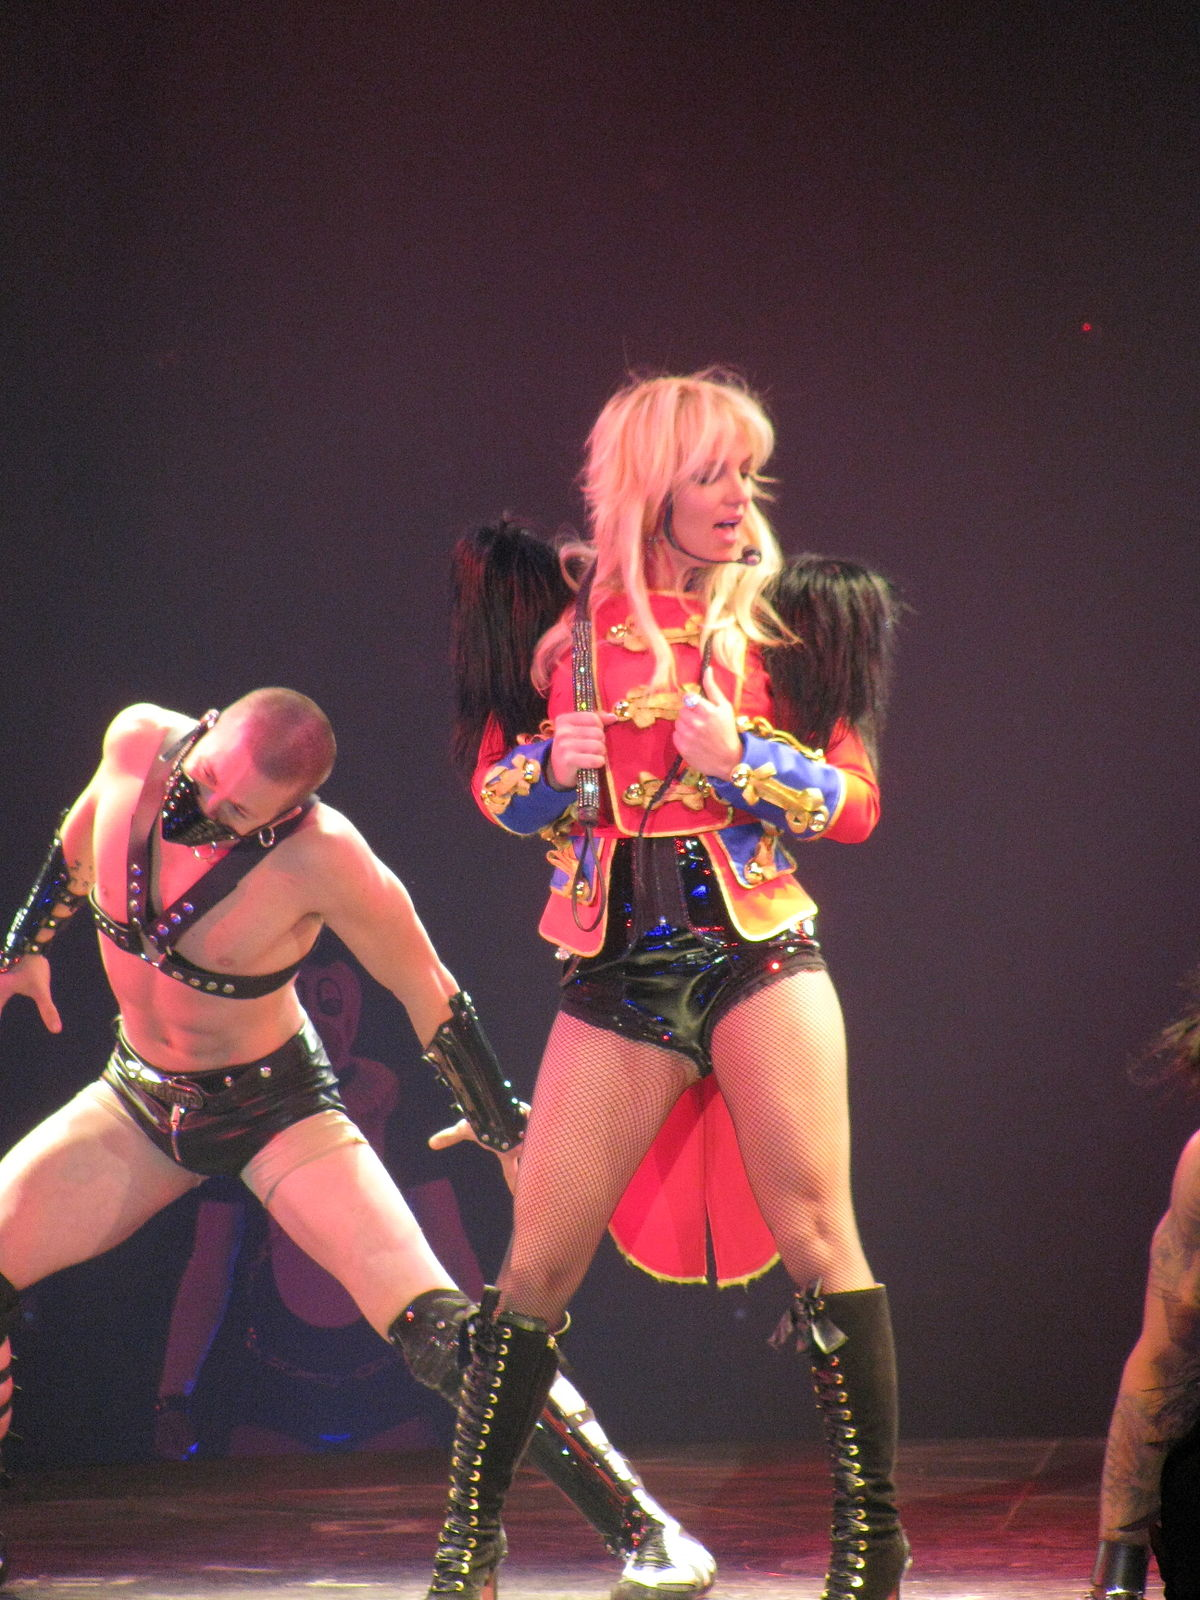 Britney spears house of blues pictures